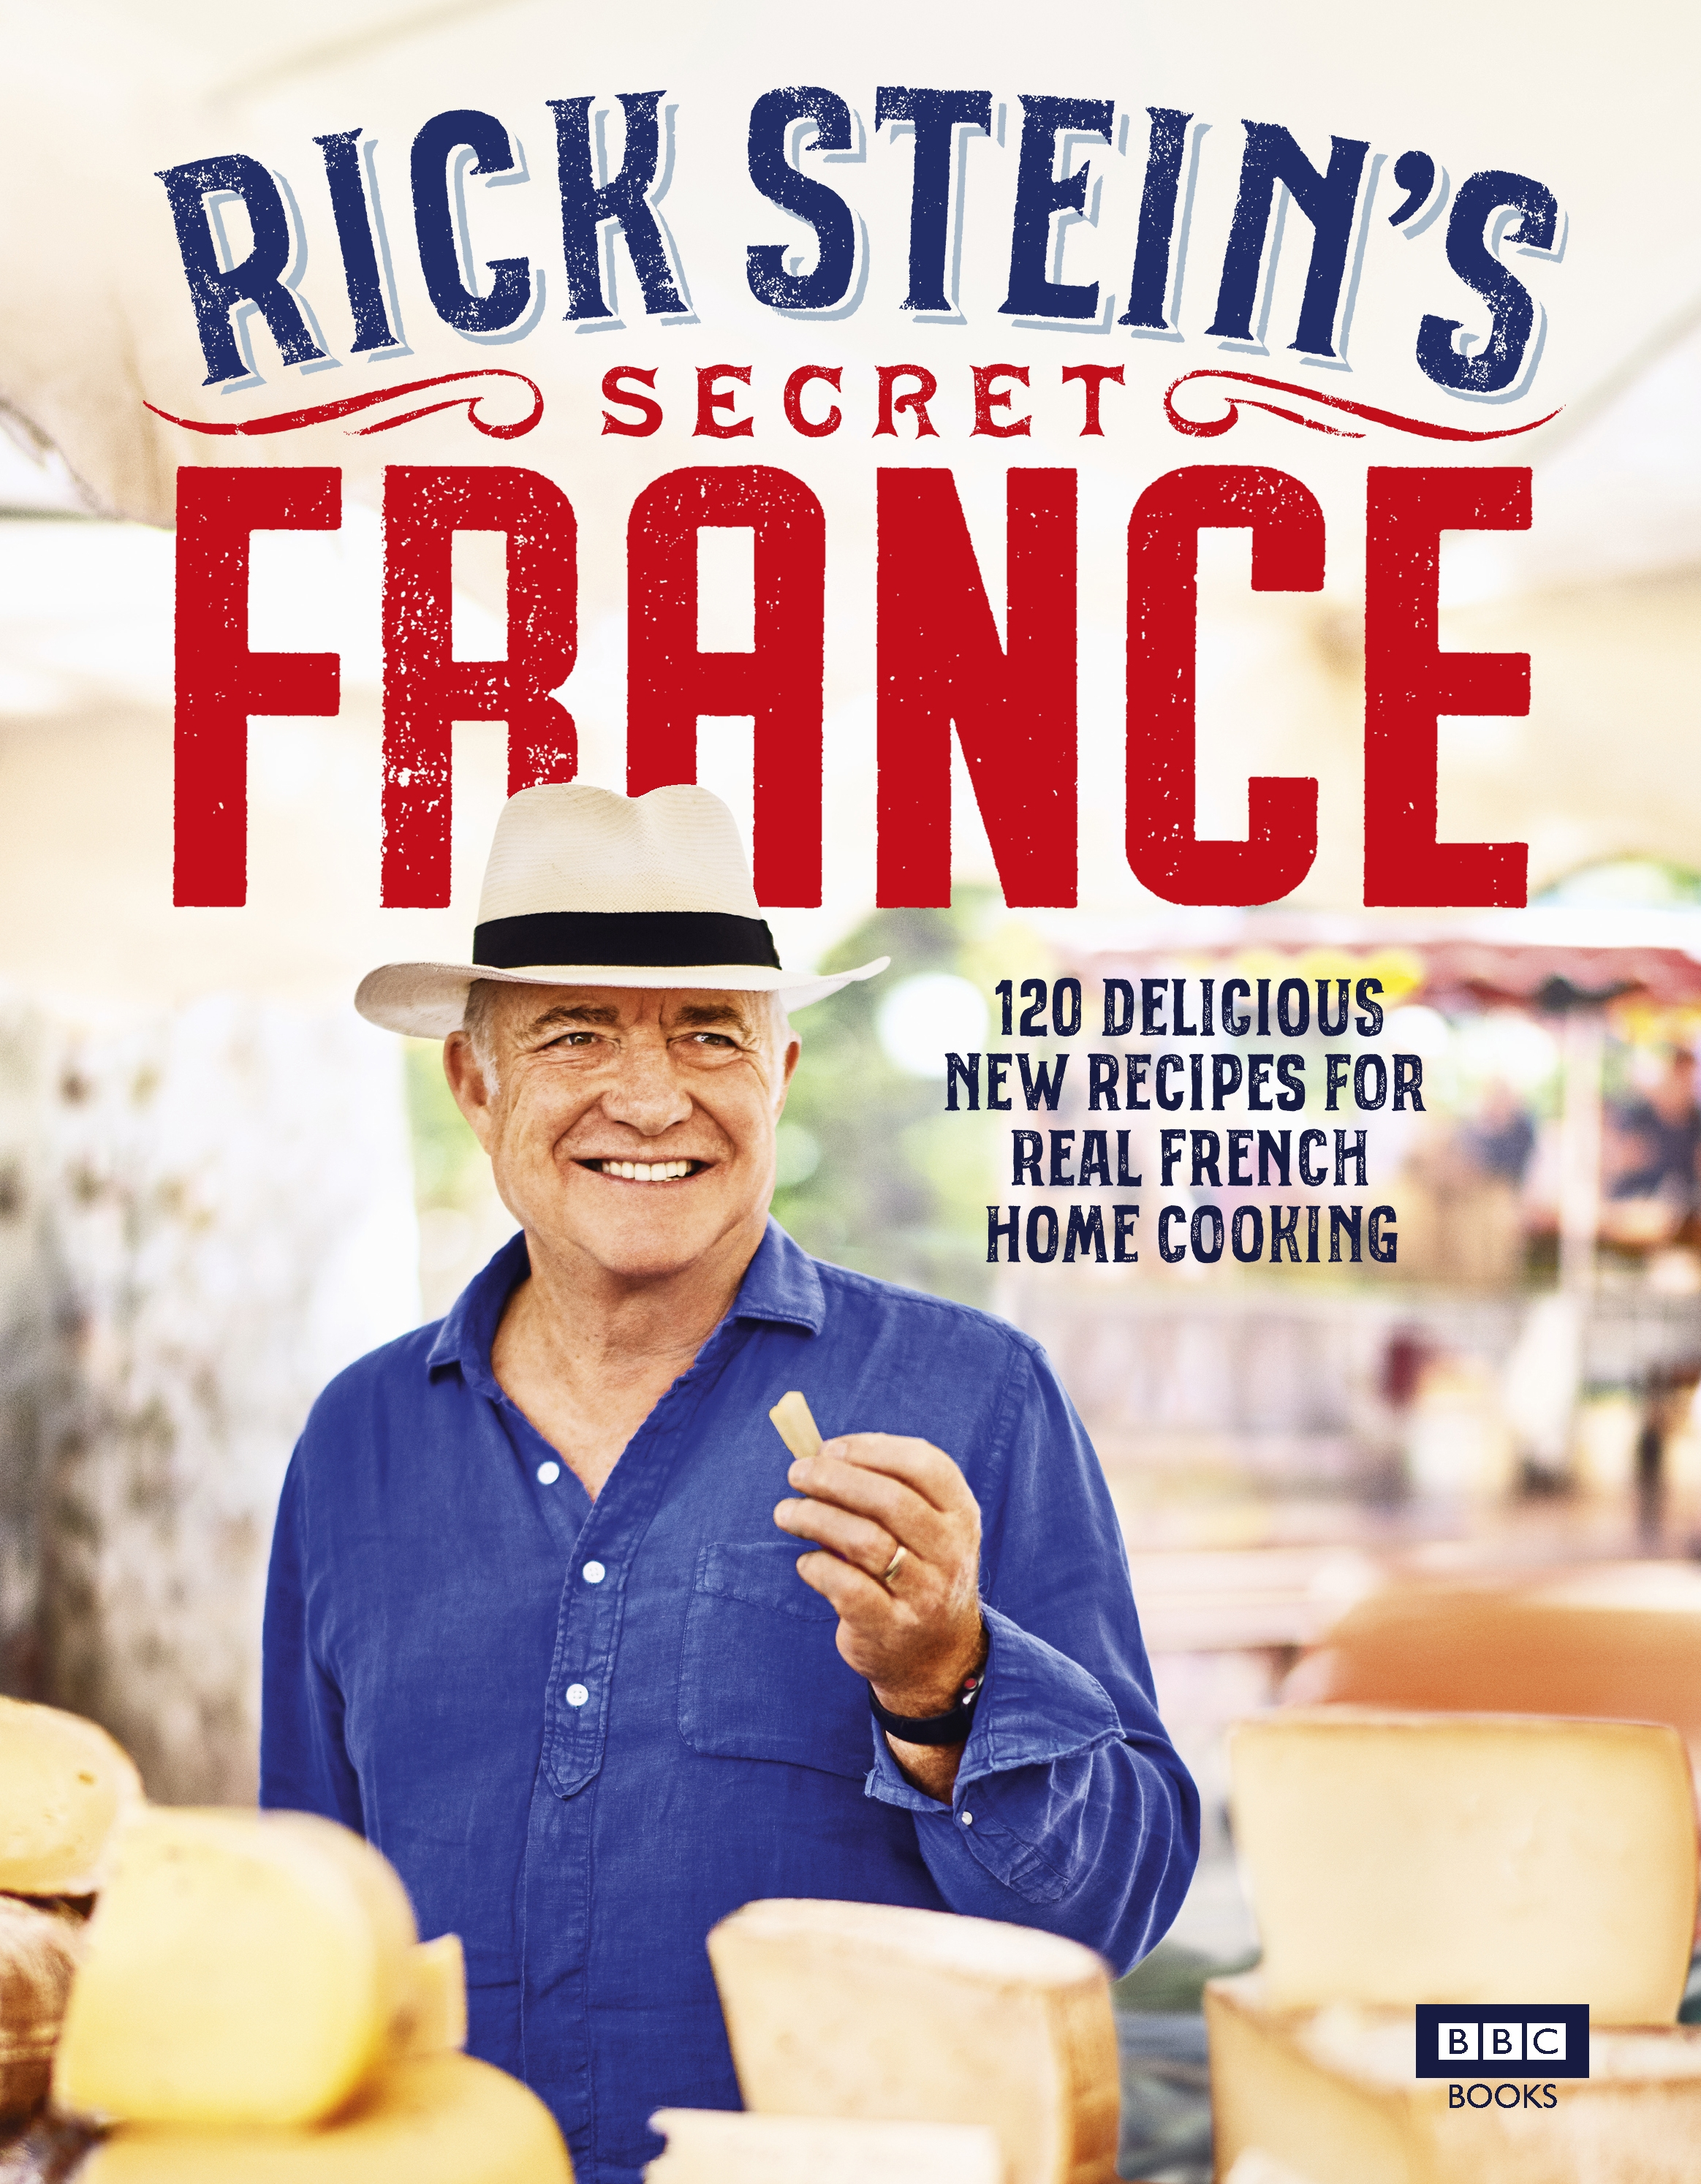 Rick Stein's Secret France by Rick Stein, ISBN: 9781785943881